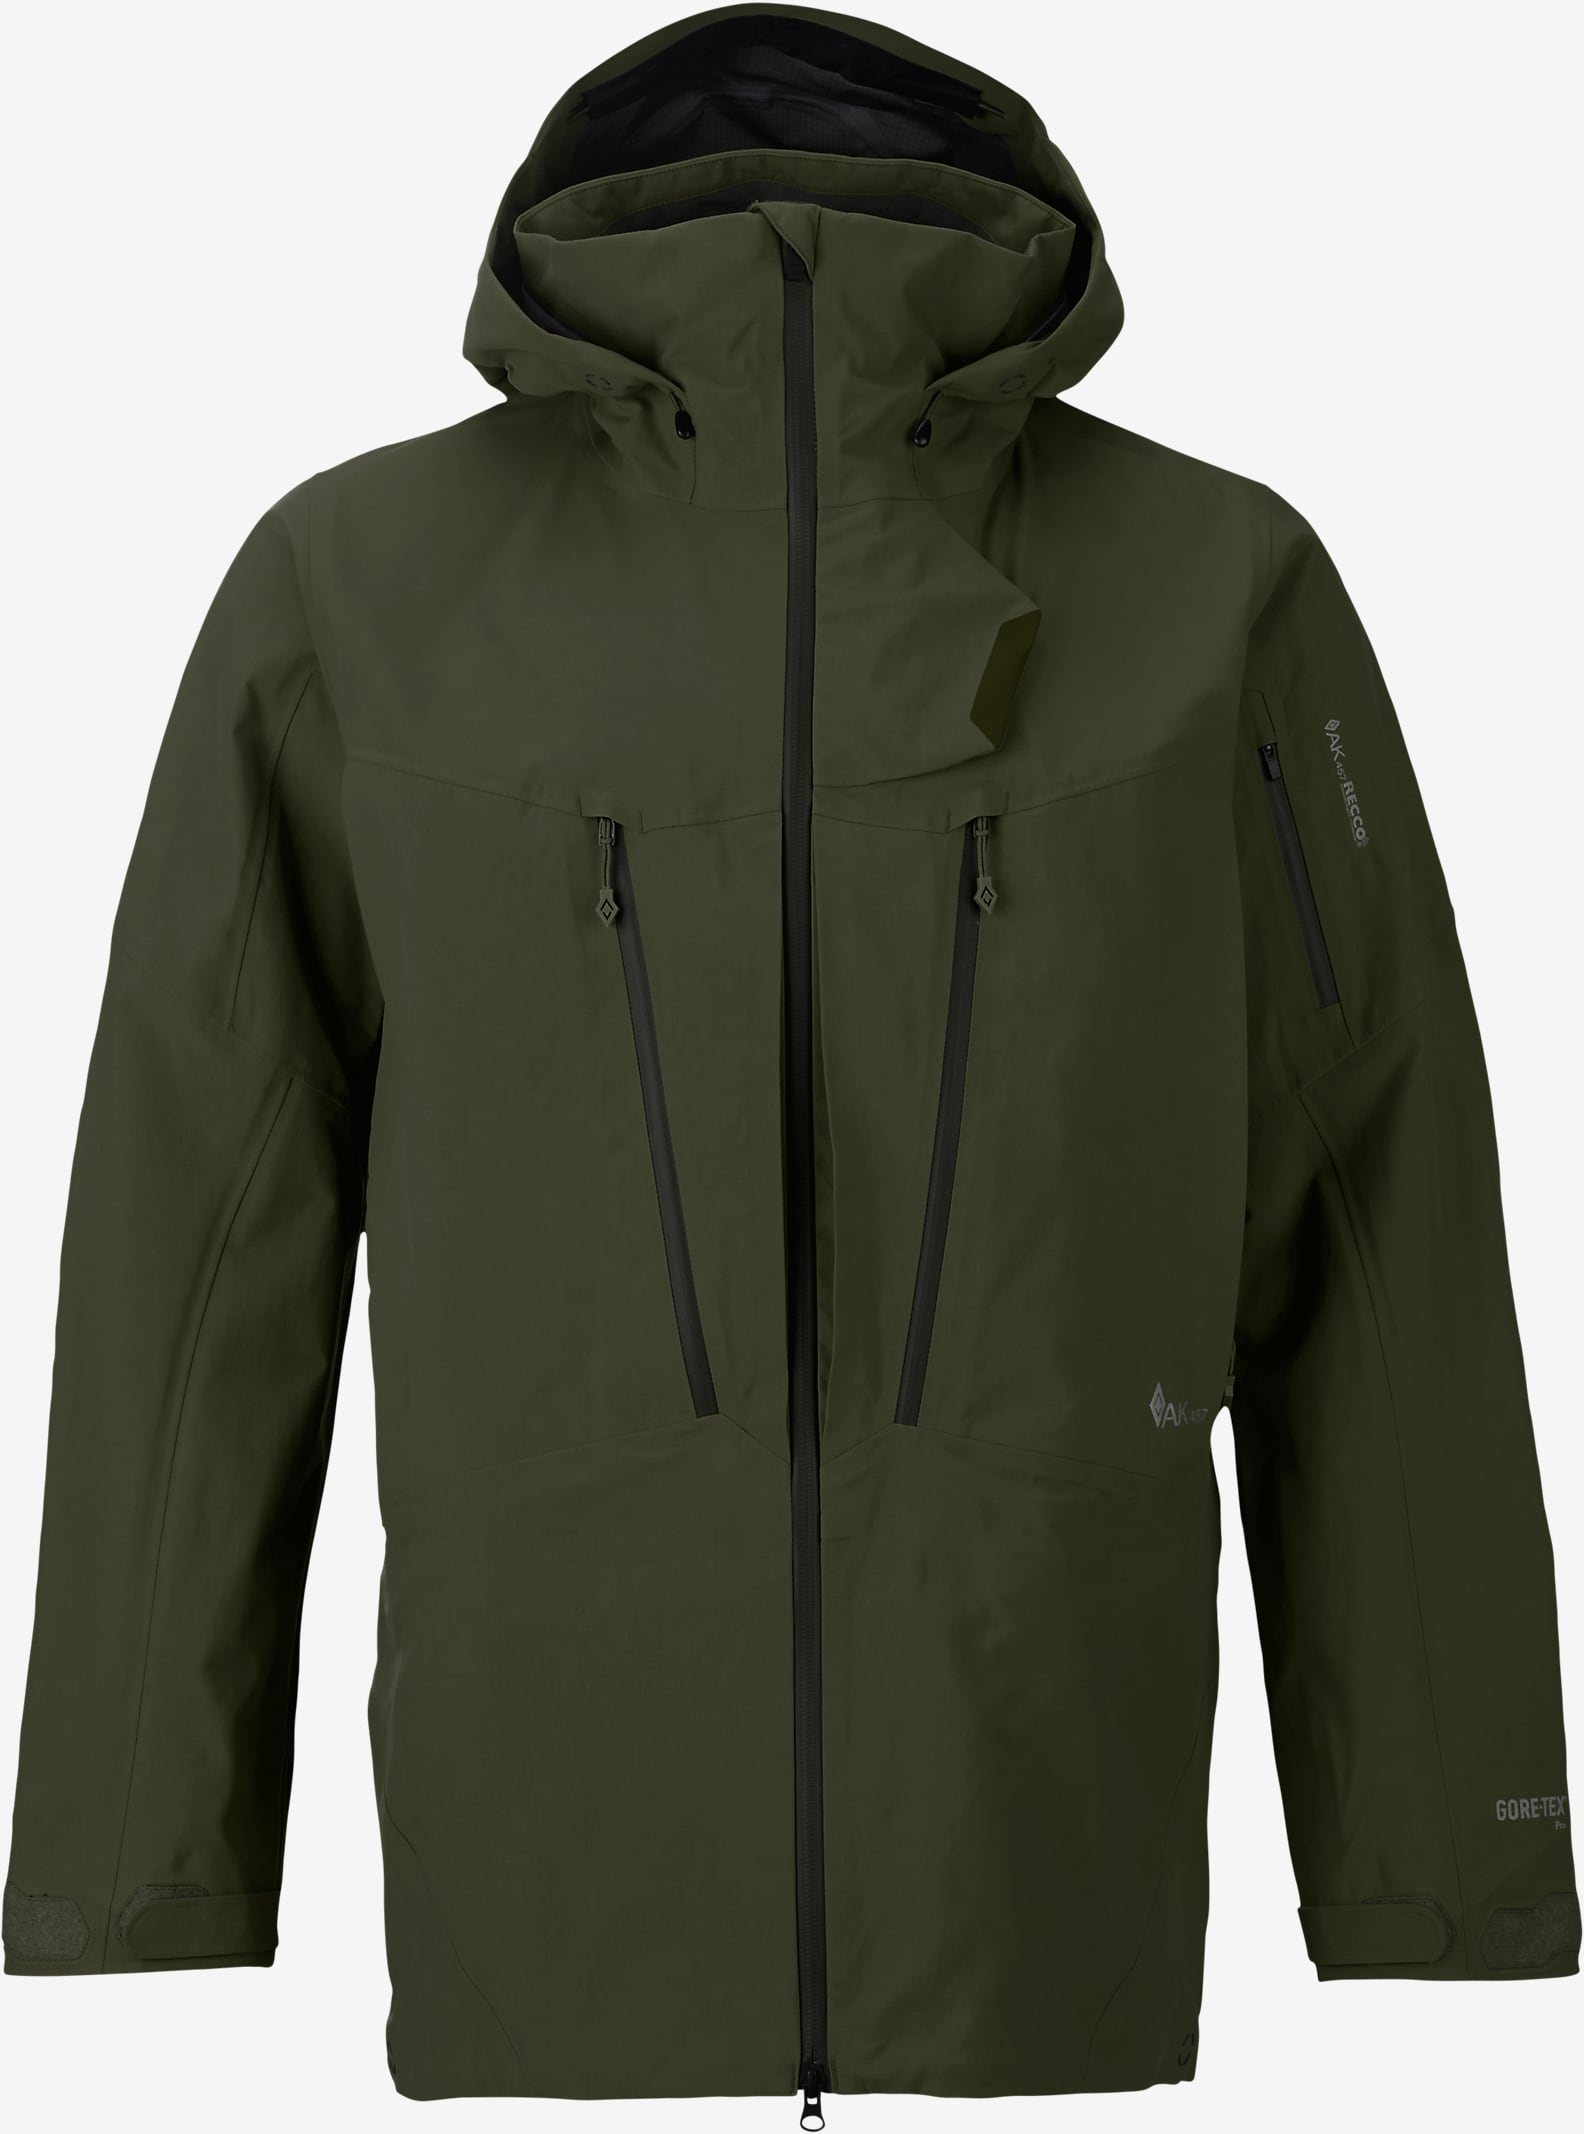 Burton AK457 Guide Jacket shown in Olive